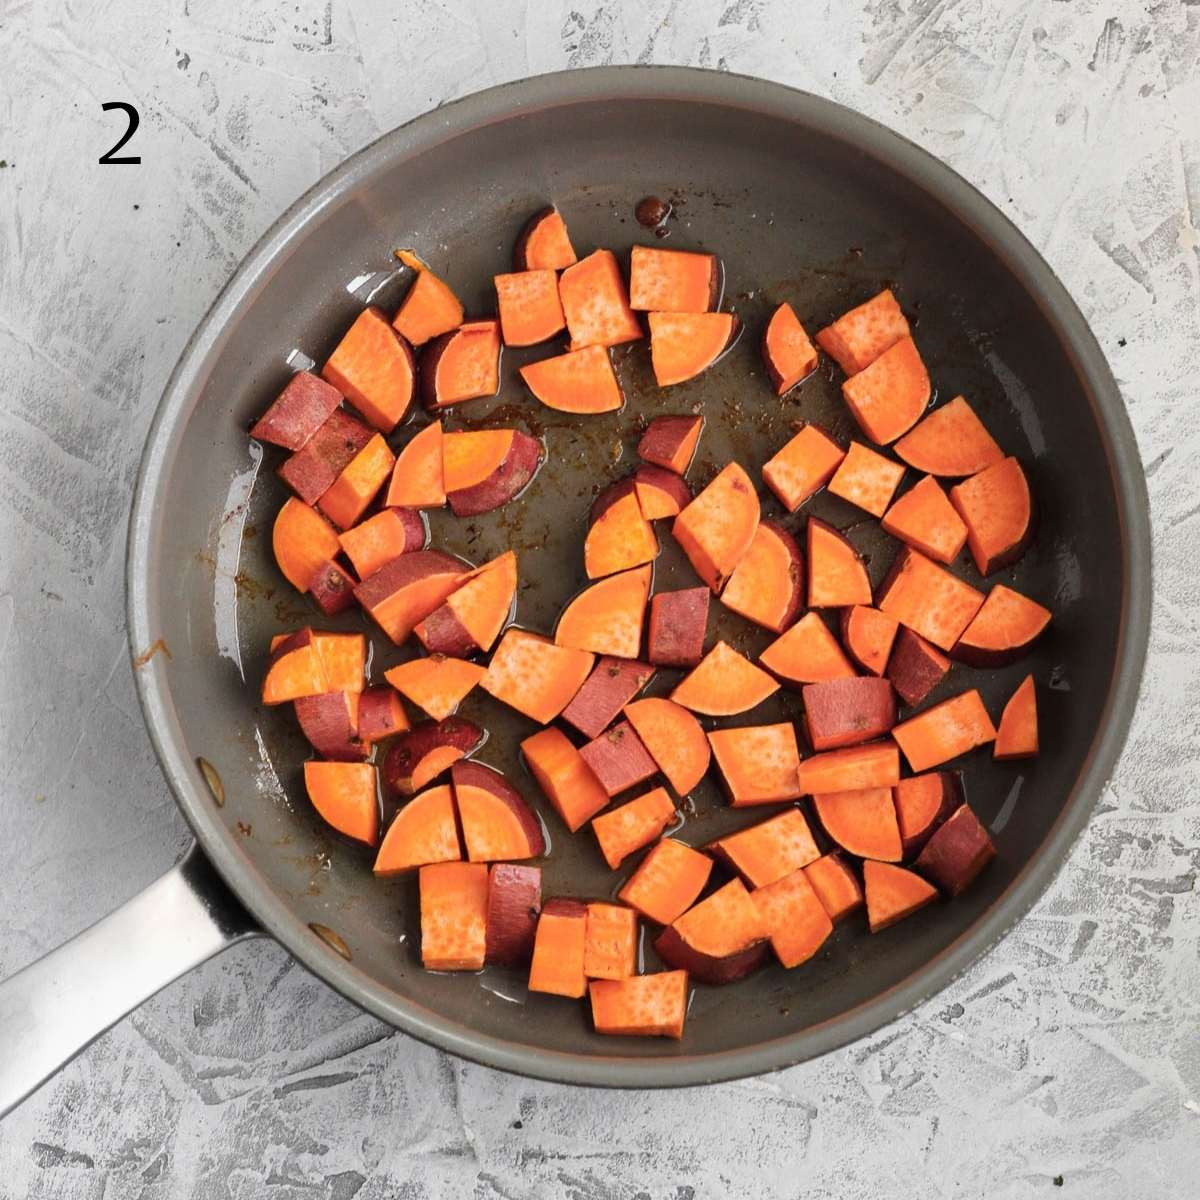 a pan with diced sweet potatoes inside